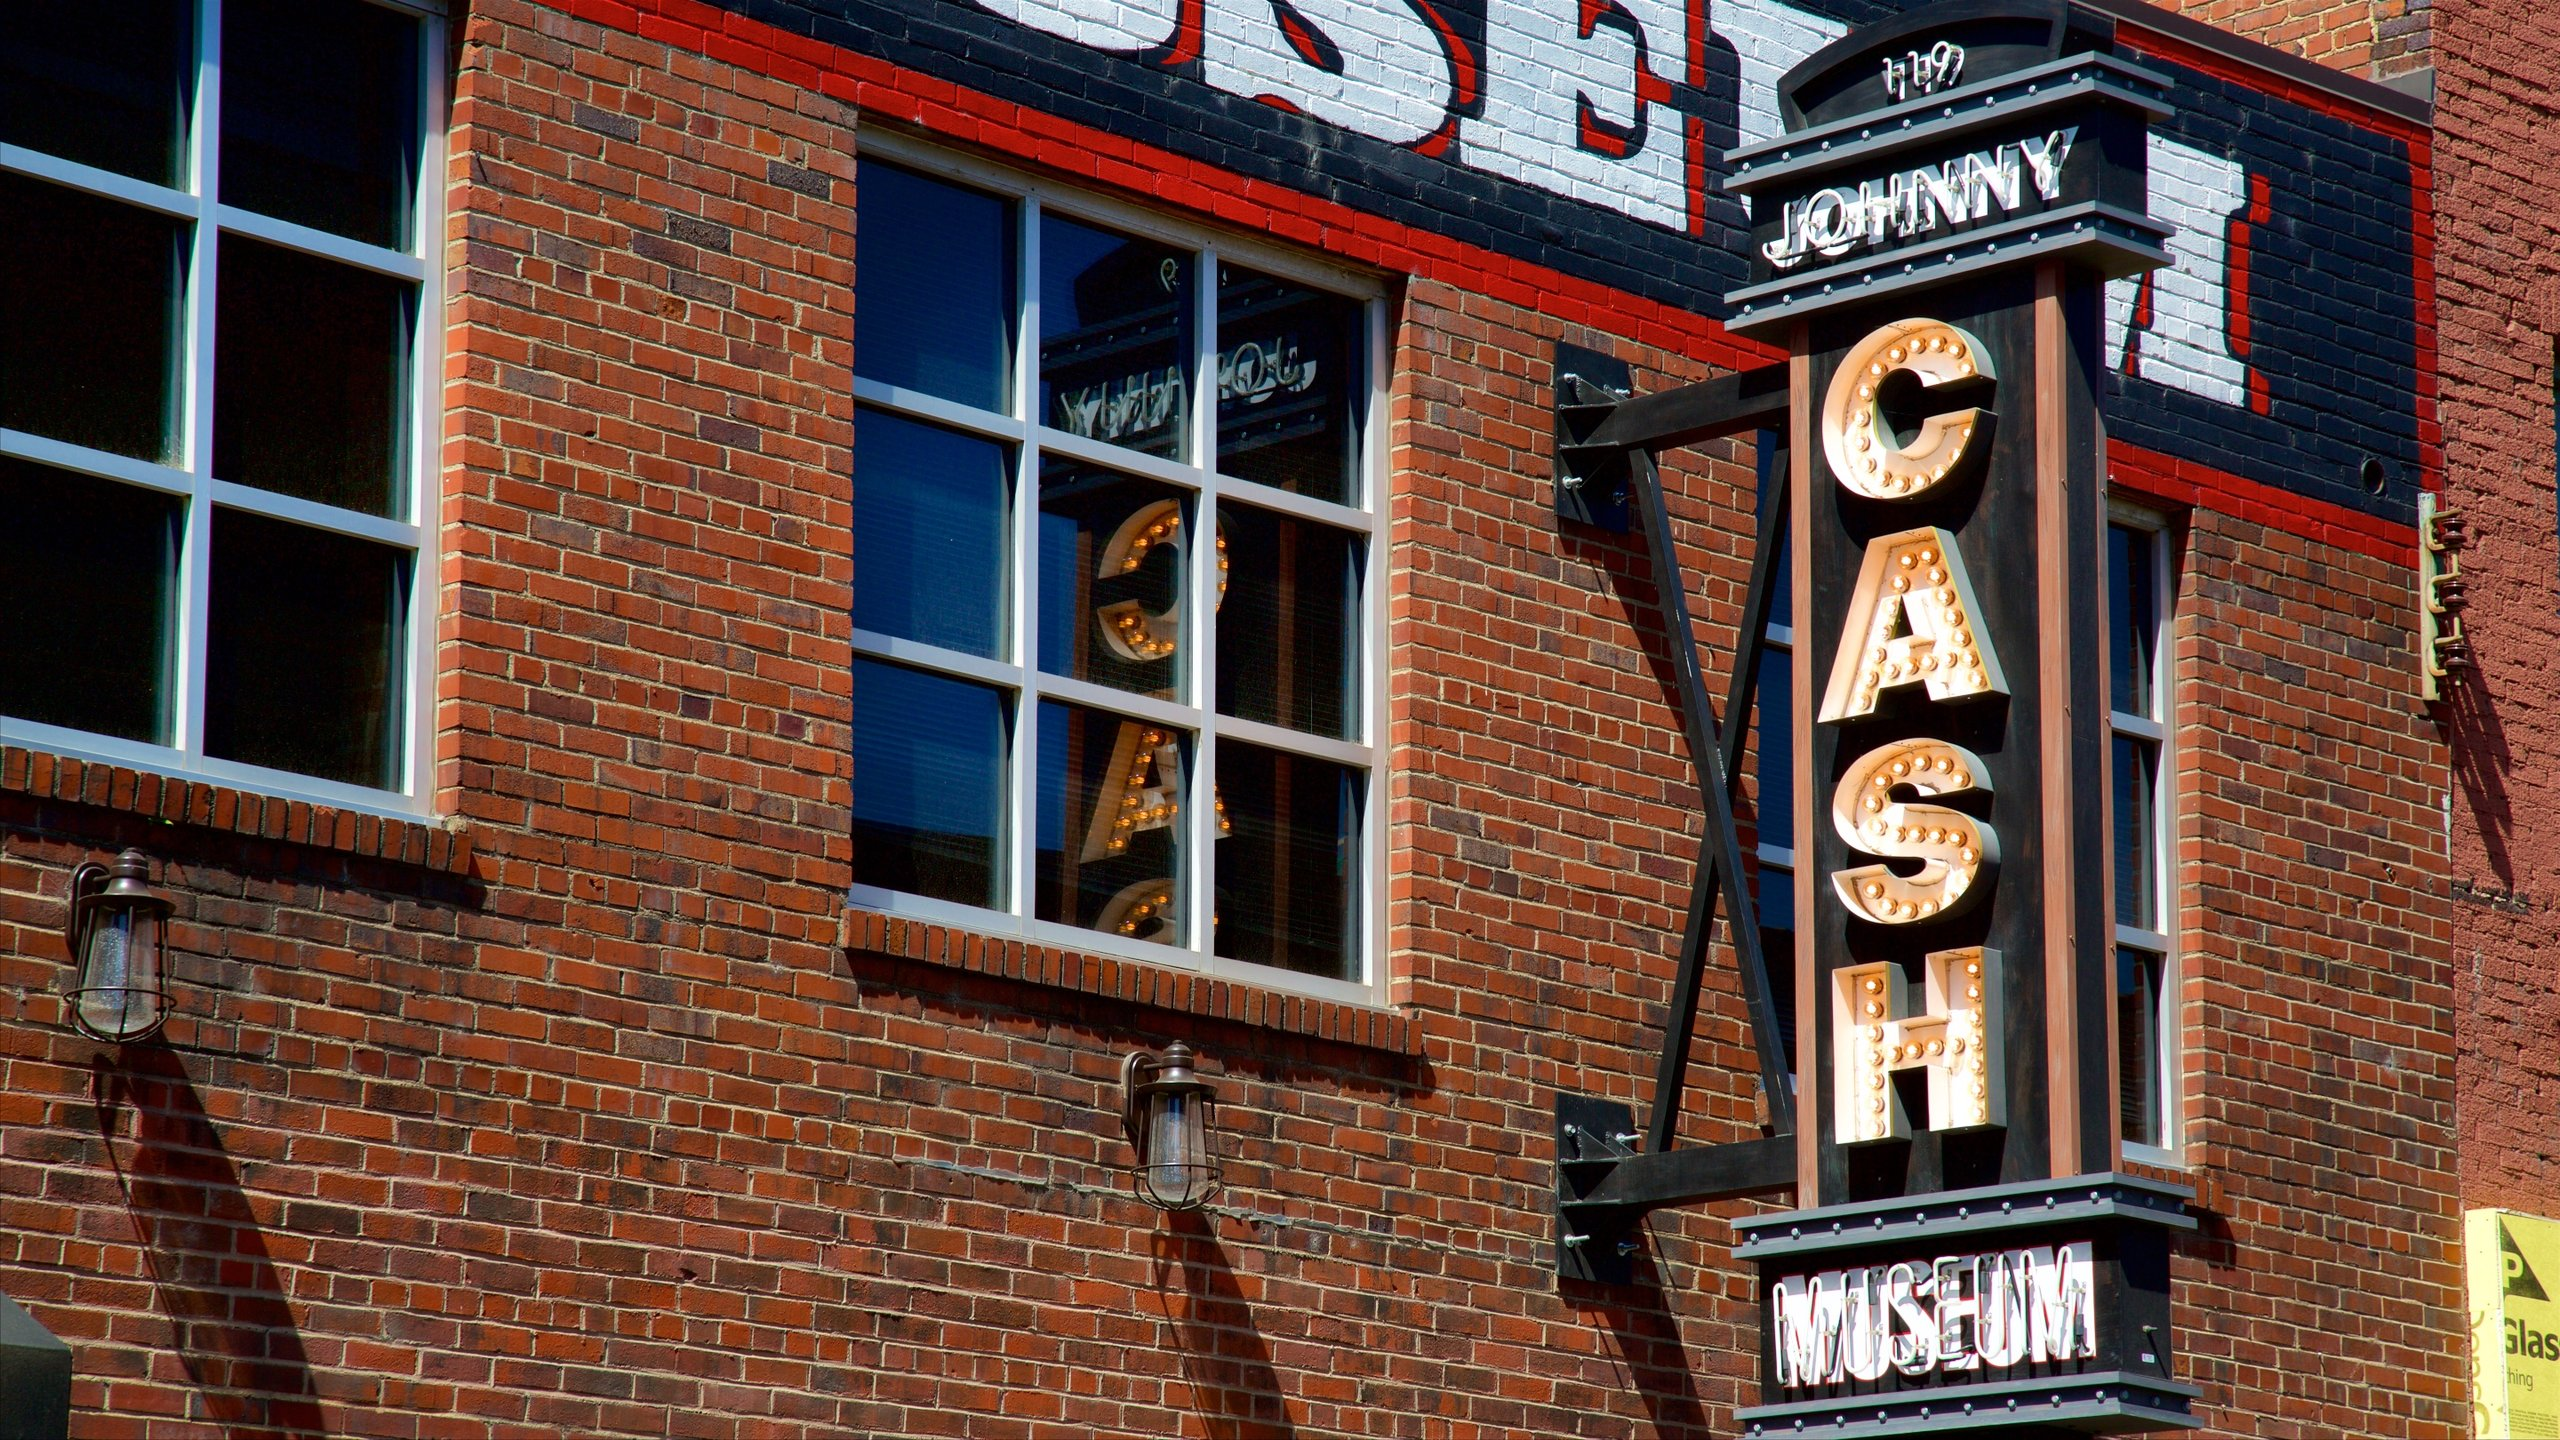 Johnny Cash Museum, Nashville, Tennessee, United States of America